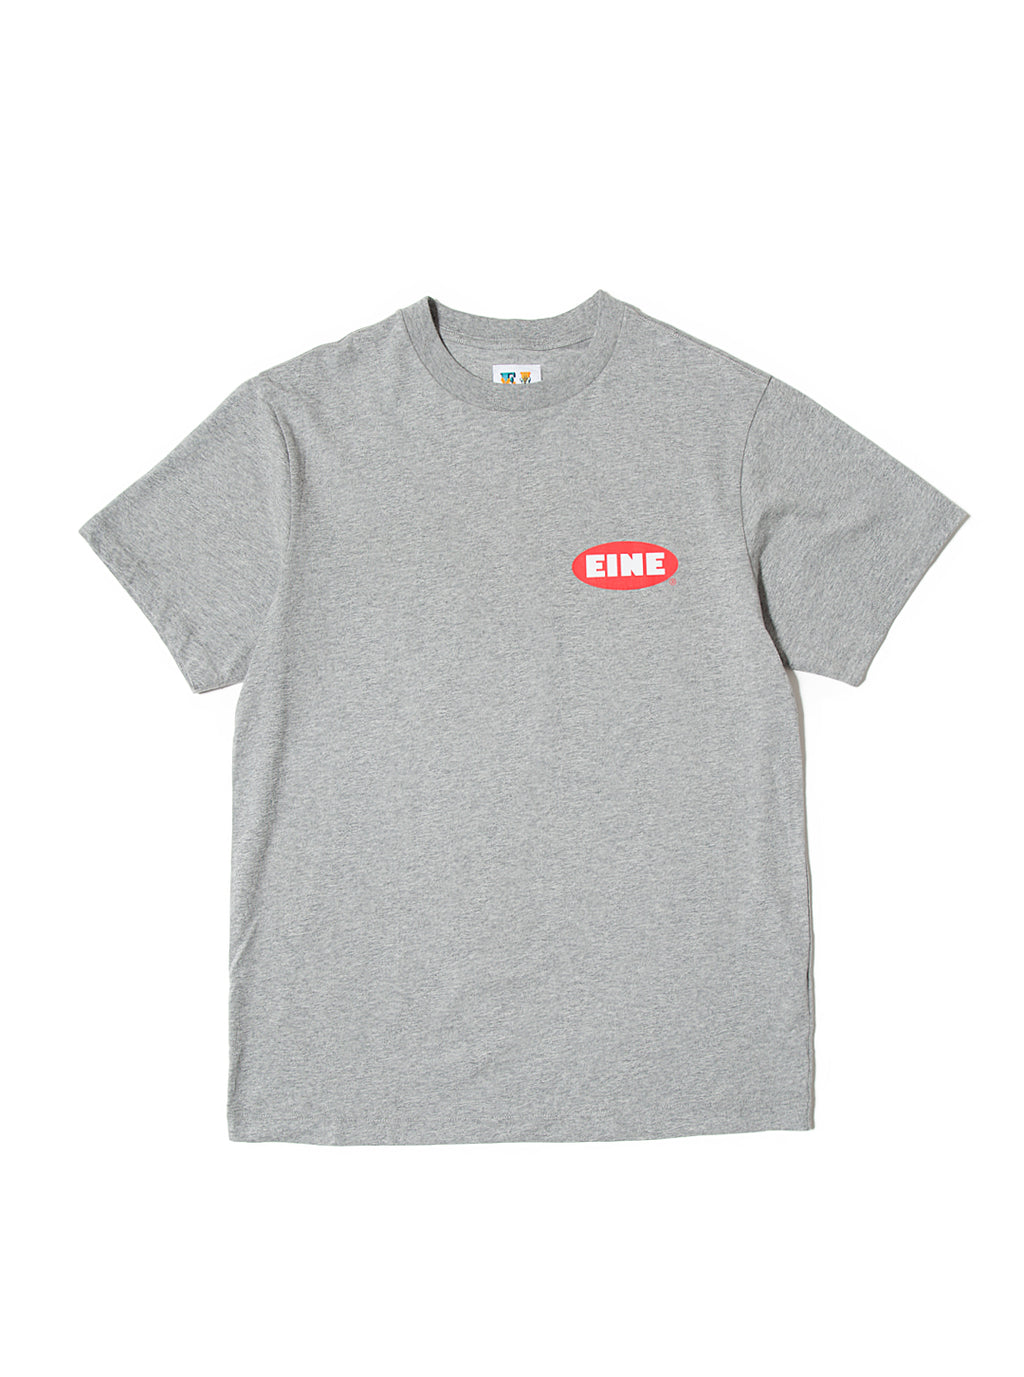 EINE Stock Logo S/S T-Shirt - Grey Marl Sample